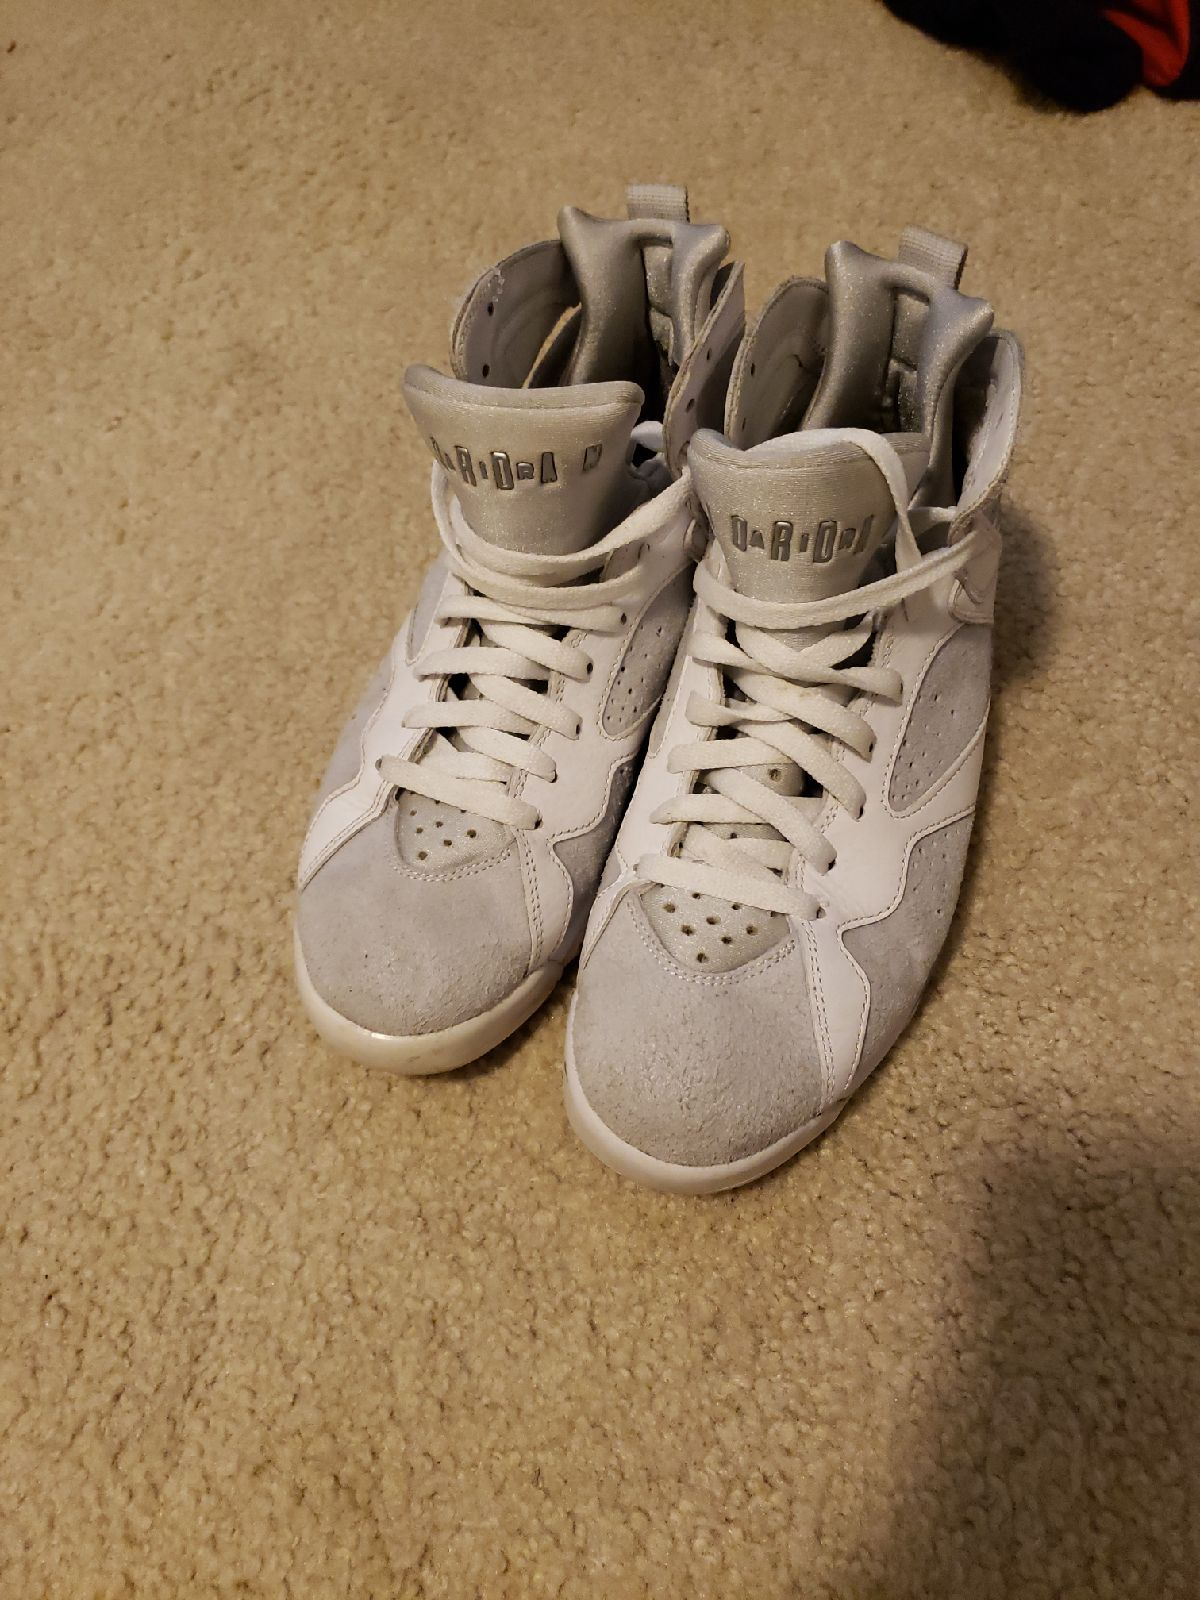 White and grey Jordan 7's Good/fair condition I bought